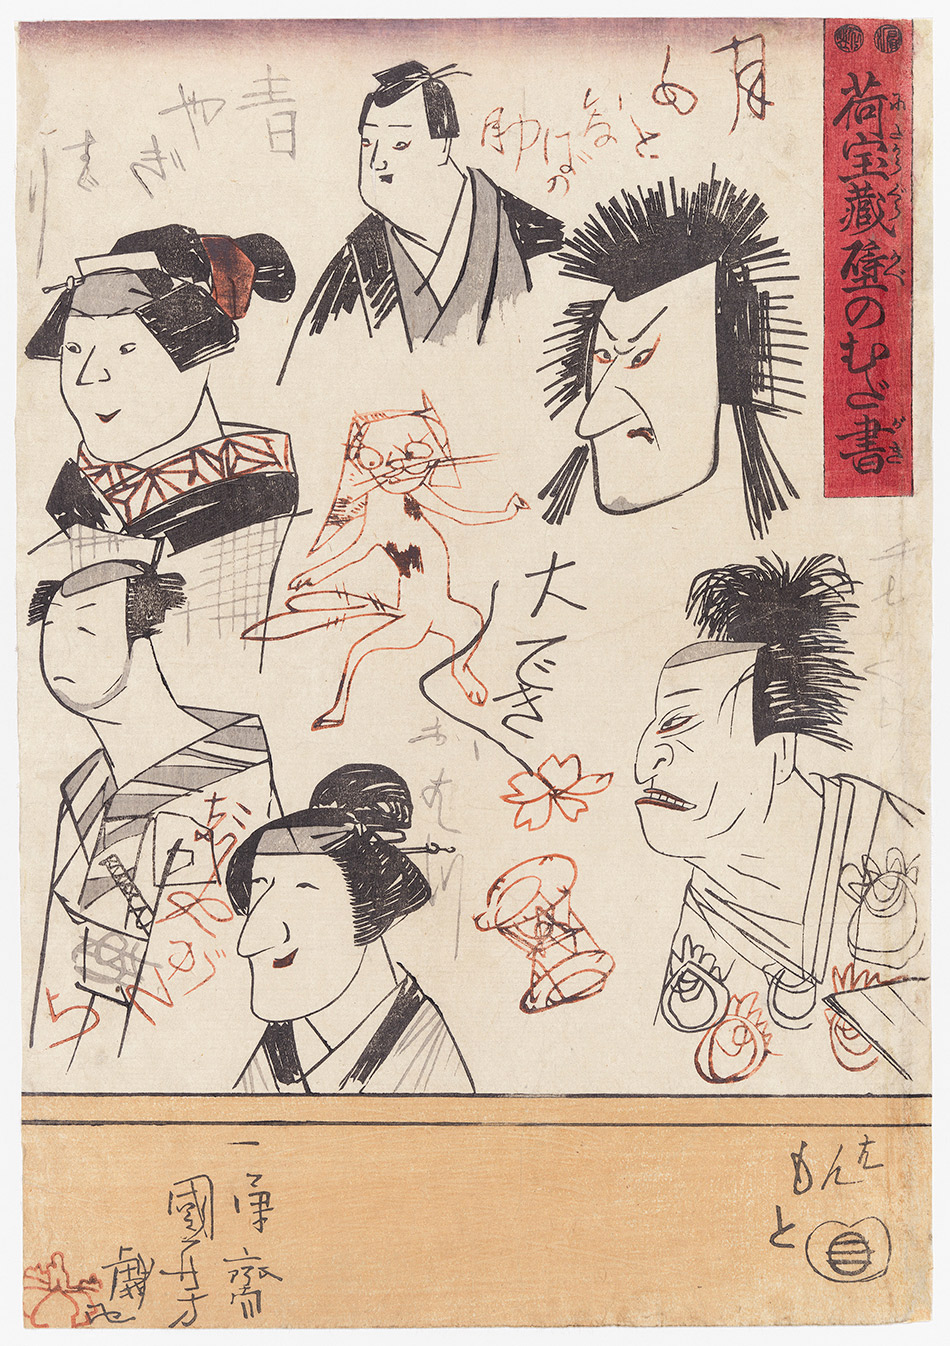 museum-of-fine-arts-boston_05.-Actor-Caricatures_Utagawa-Kuniyoshi_w